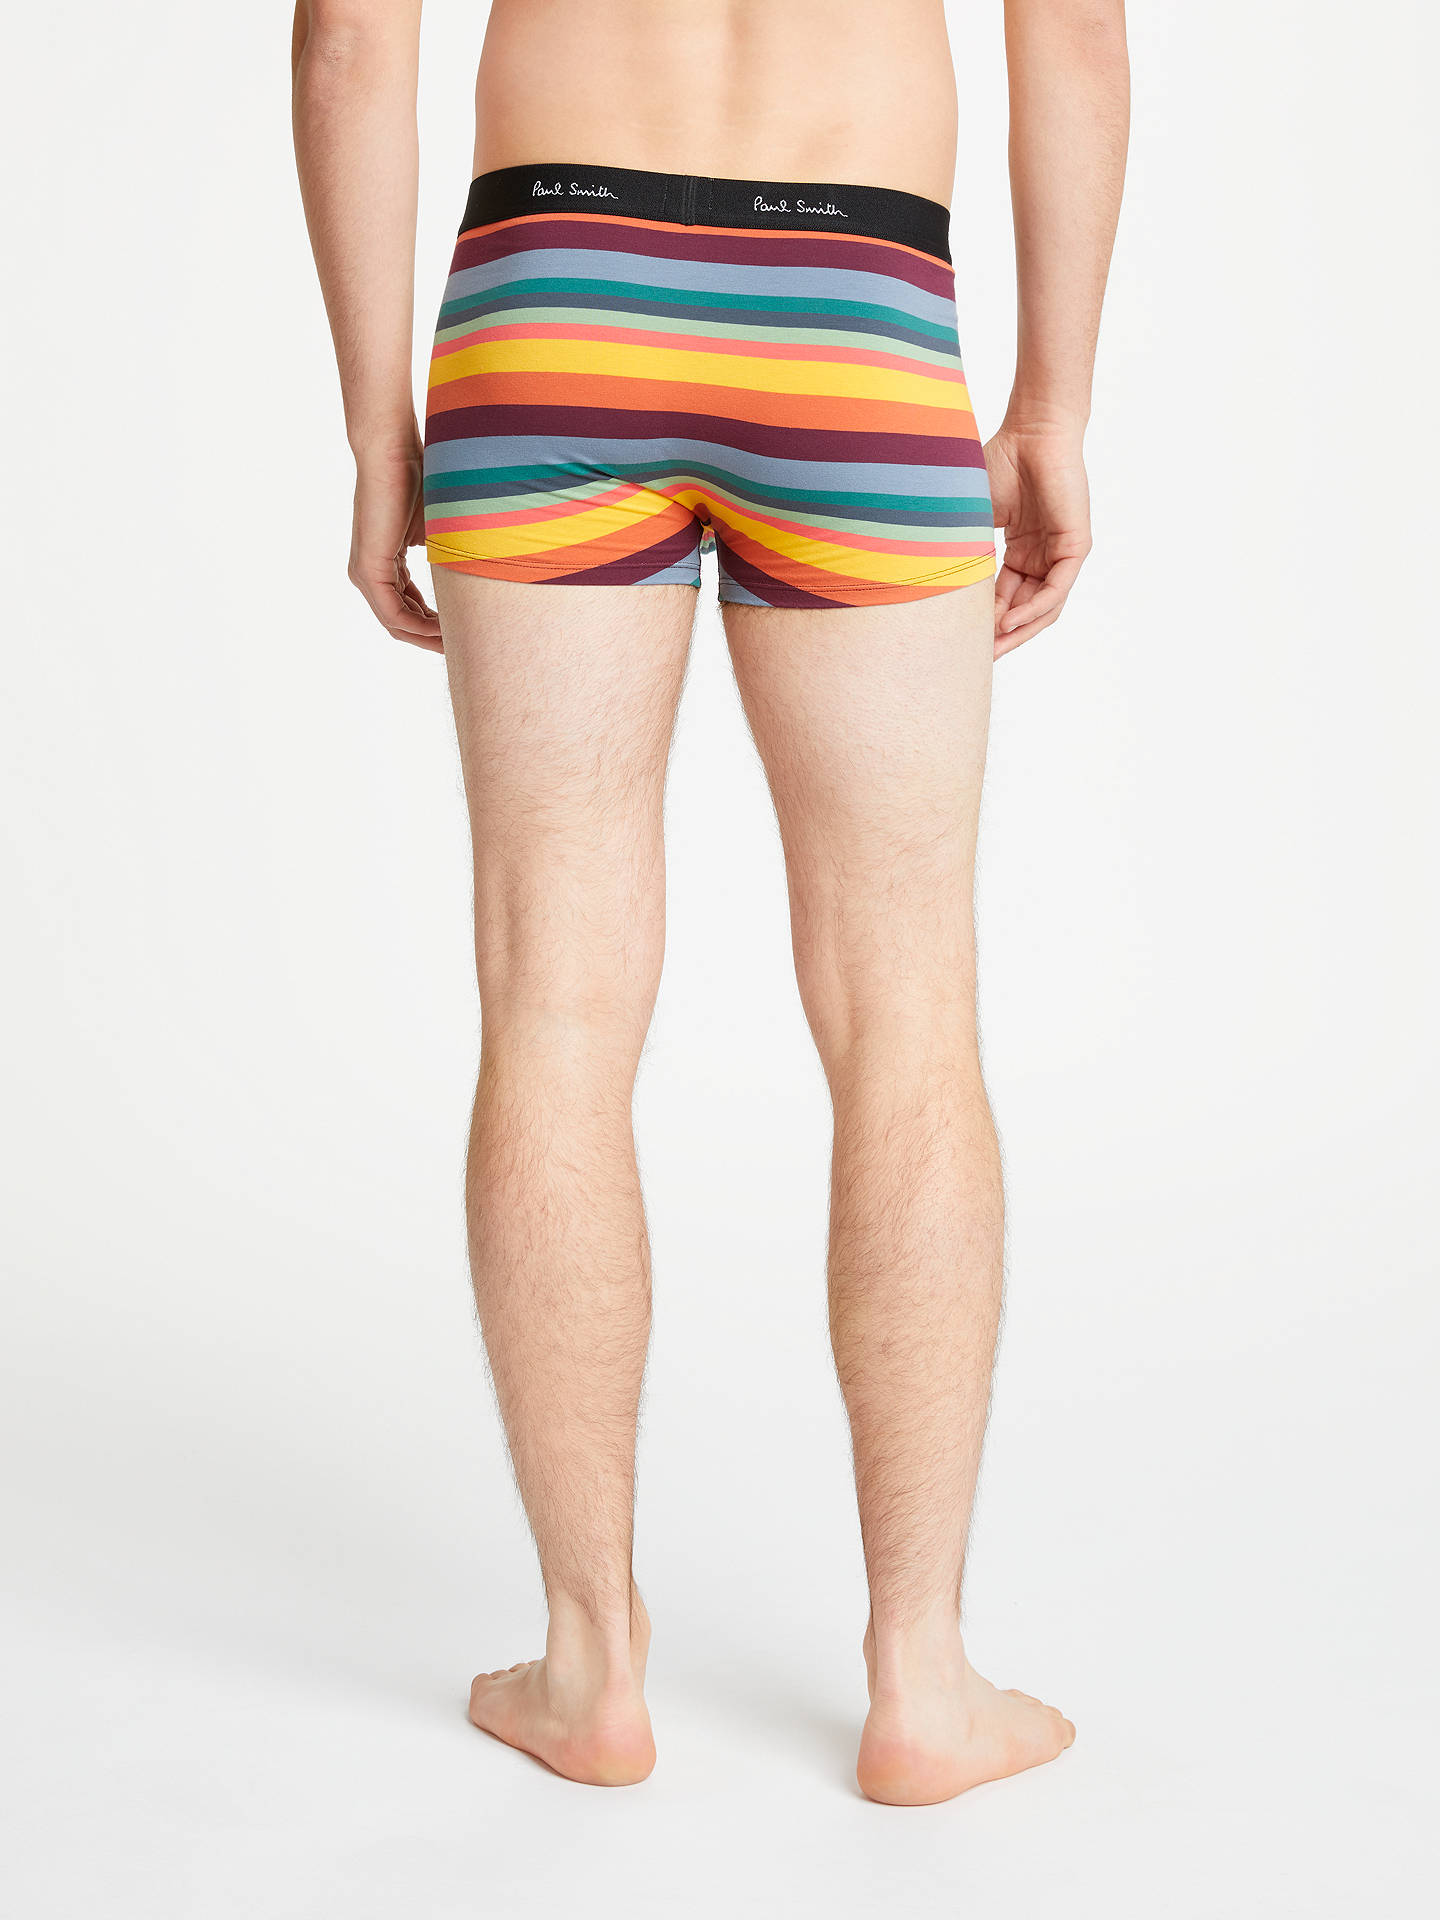 Buy Paul Smith Signature Stripe Low Rise Trunks, Pink, S Online at johnlewis.com